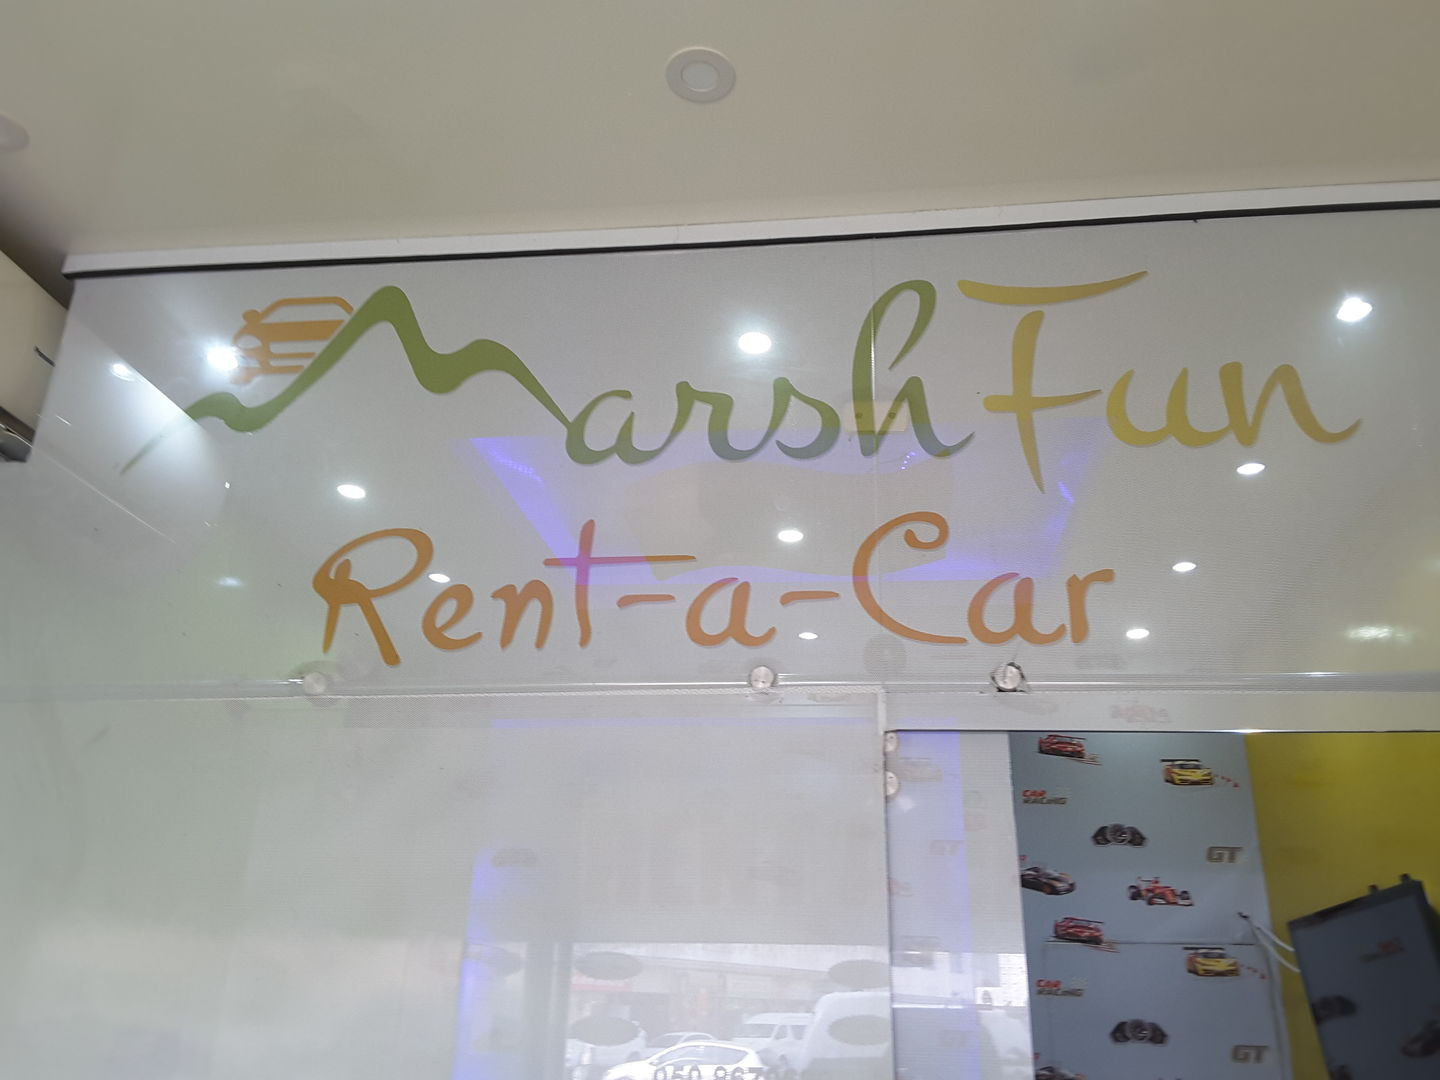 HiDubai-business-marsh-fun-rent-a-car-transport-vehicle-services-car-rental-services-al-murar-dubai-2